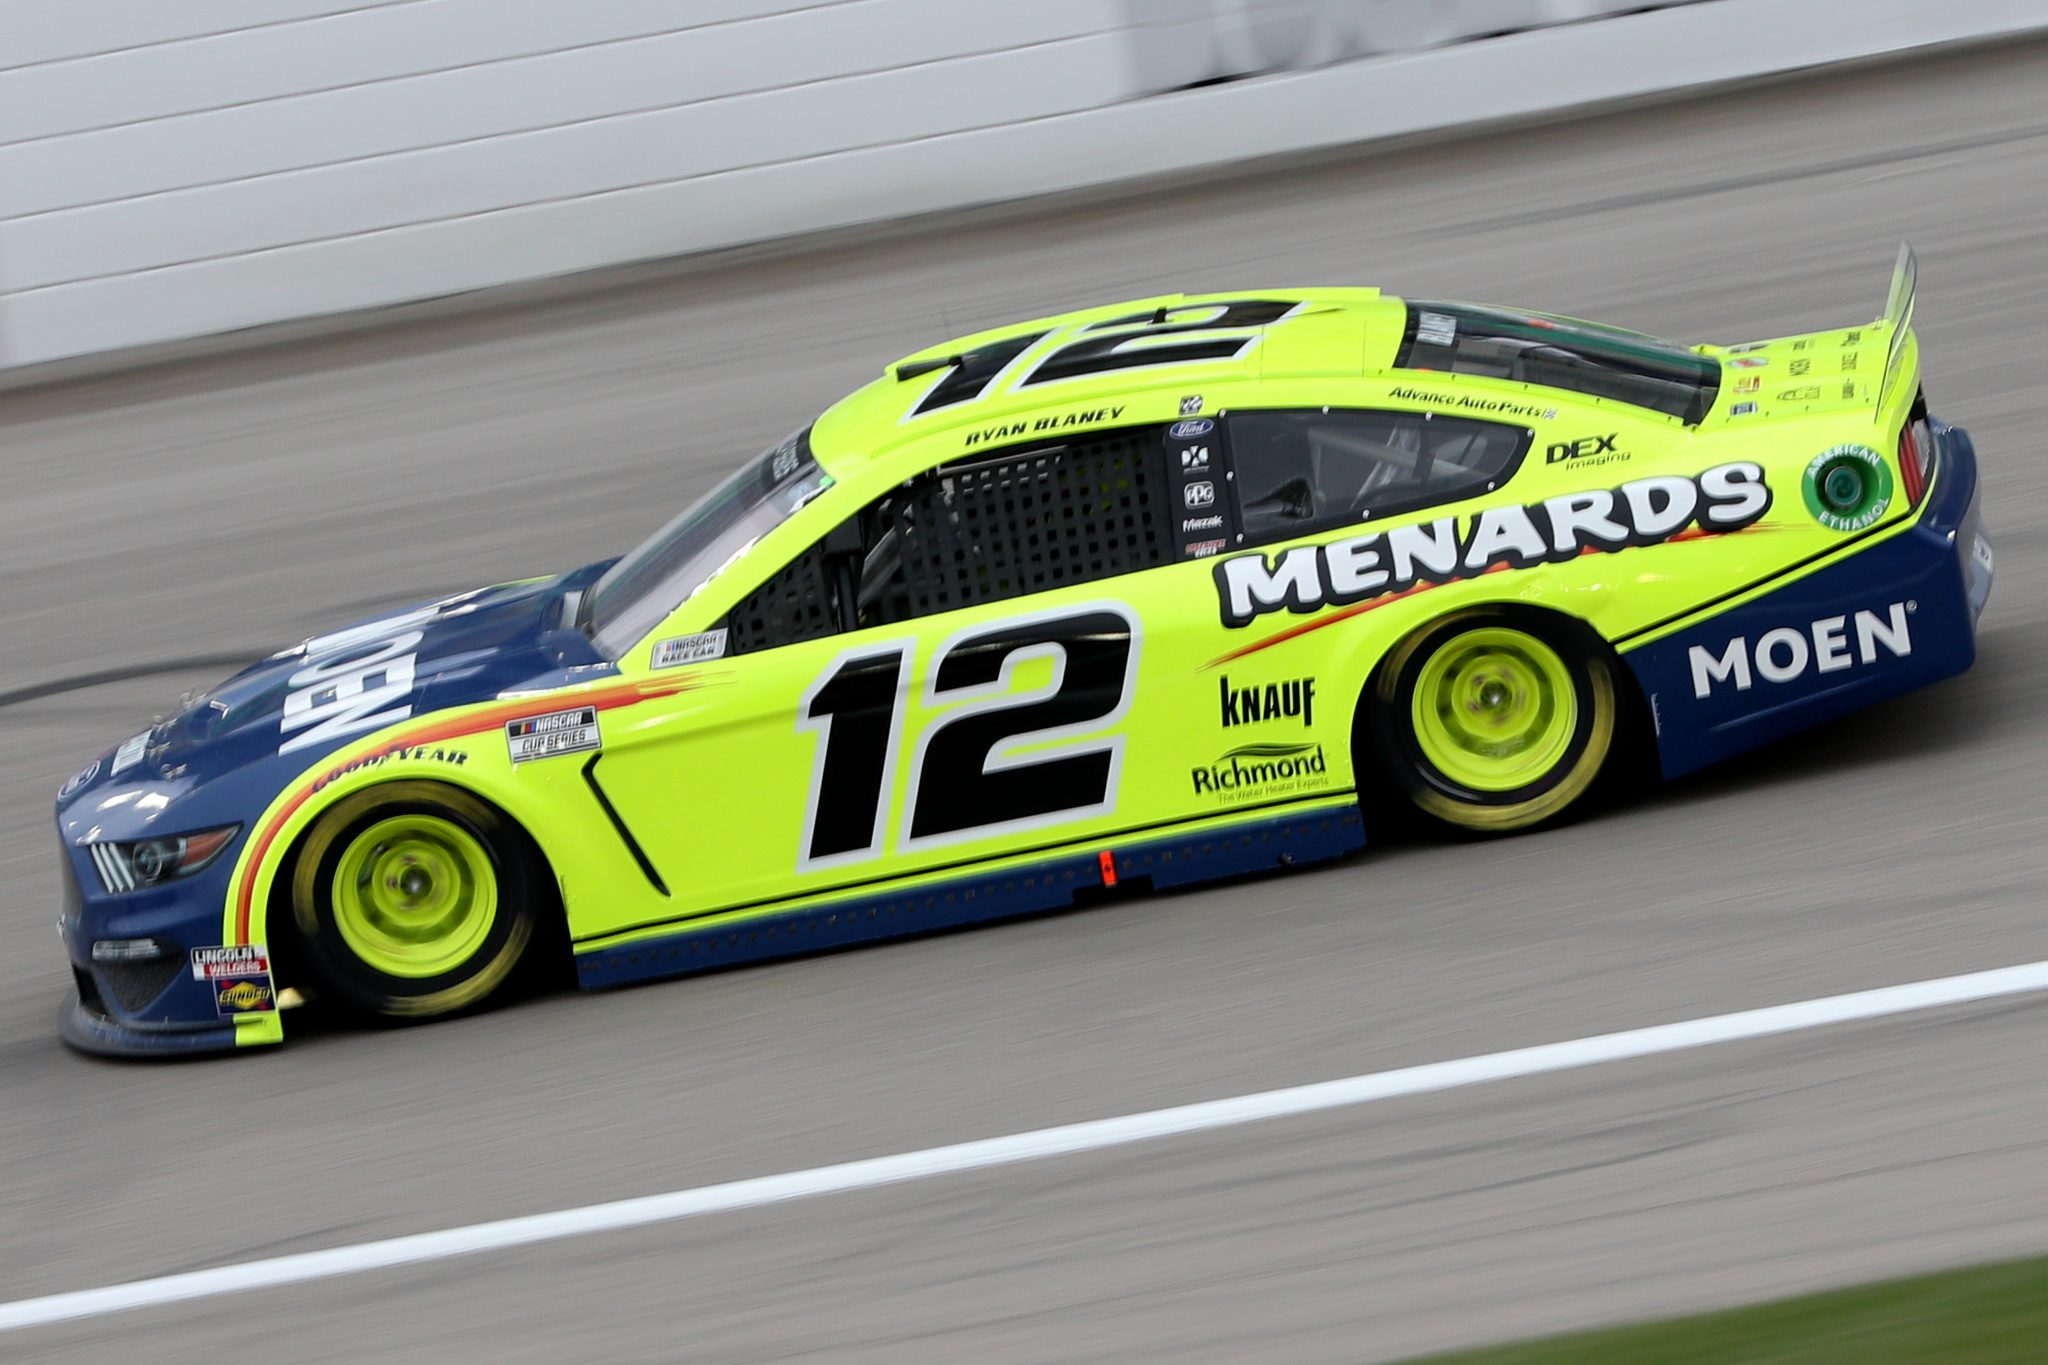 KANSAS CITY, KANSAS - OCTOBER 18: Ryan Blaney, driver of the #12 Ford, drives during the NASCAR Cup Series Hollywood Casino 400 at Kansas Speedway on October 18, 2020 in Kansas City, Kansas. (Photo by Chris Graythen/Getty Images) | Getty Images